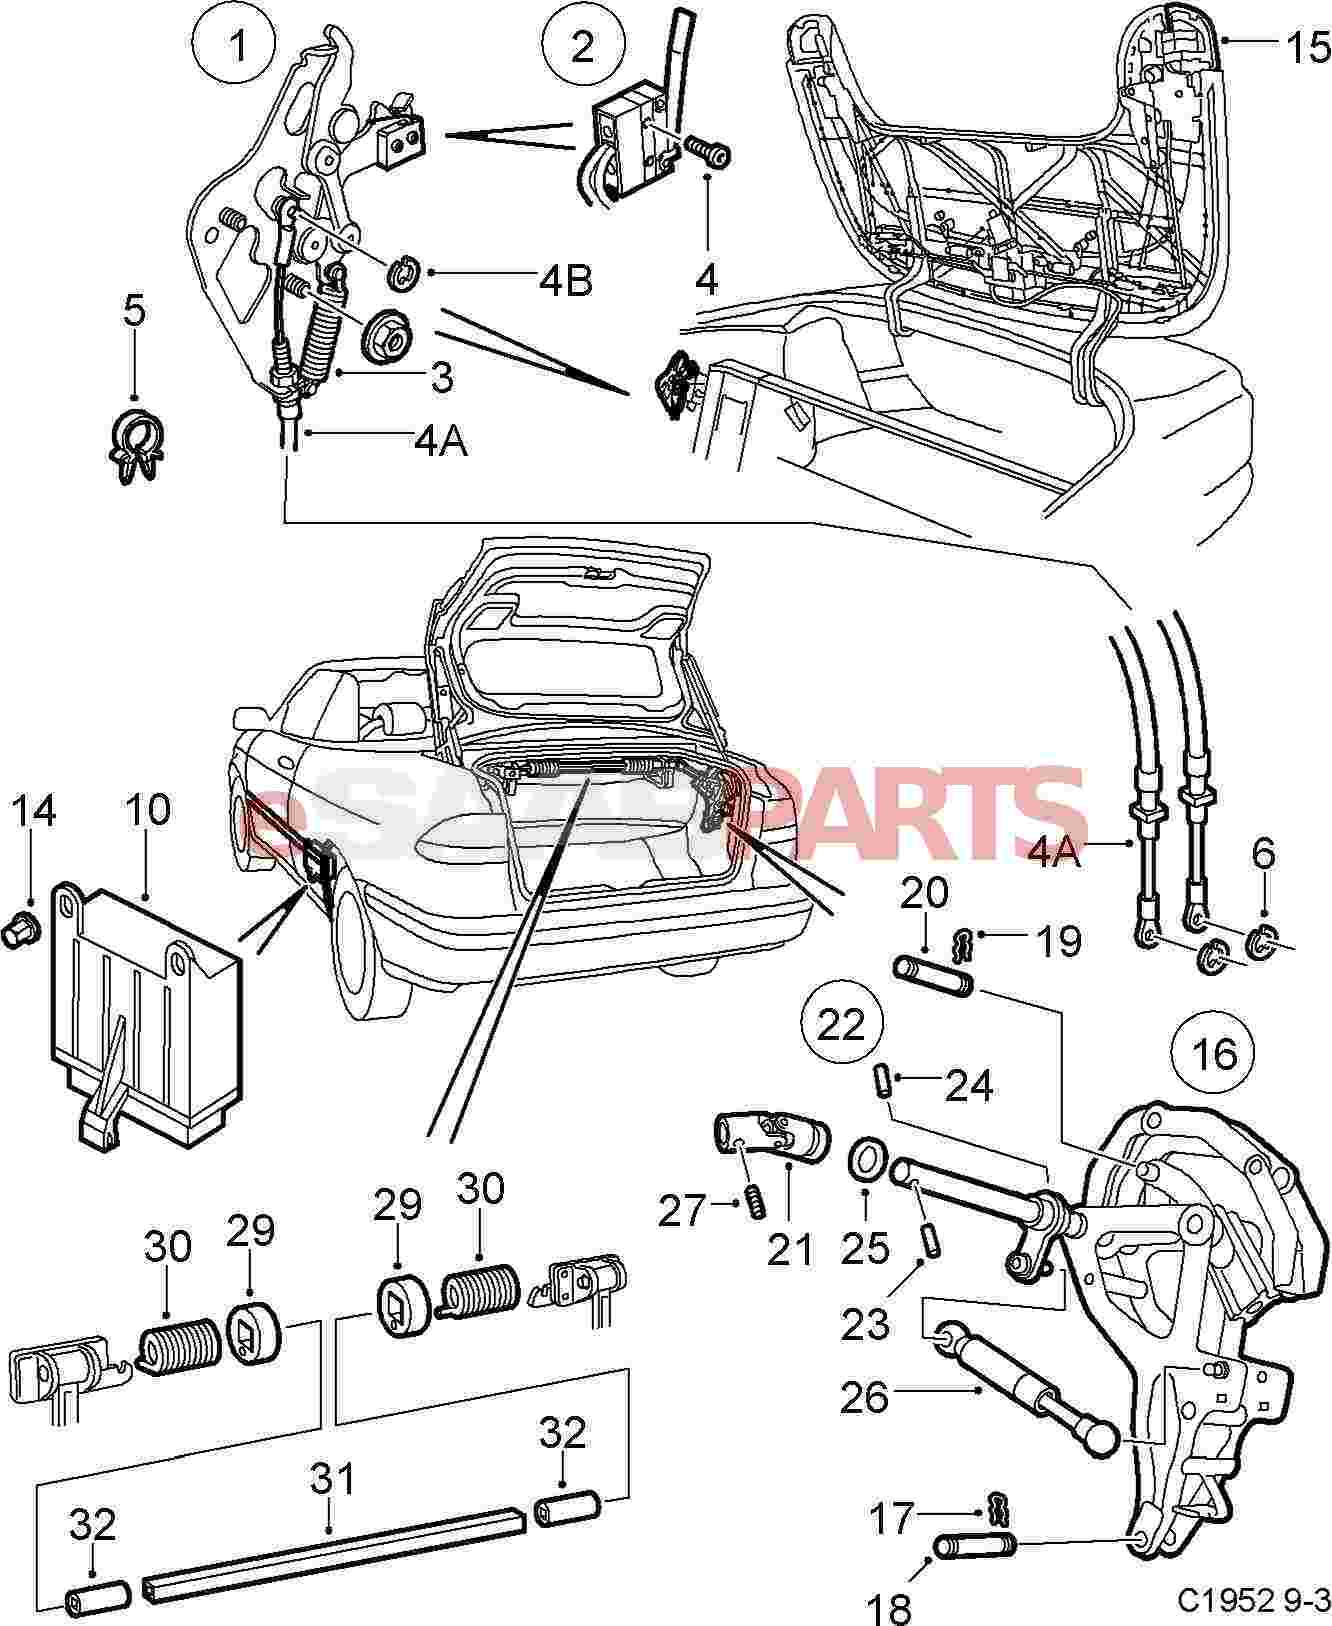 saab 900 parts diagram